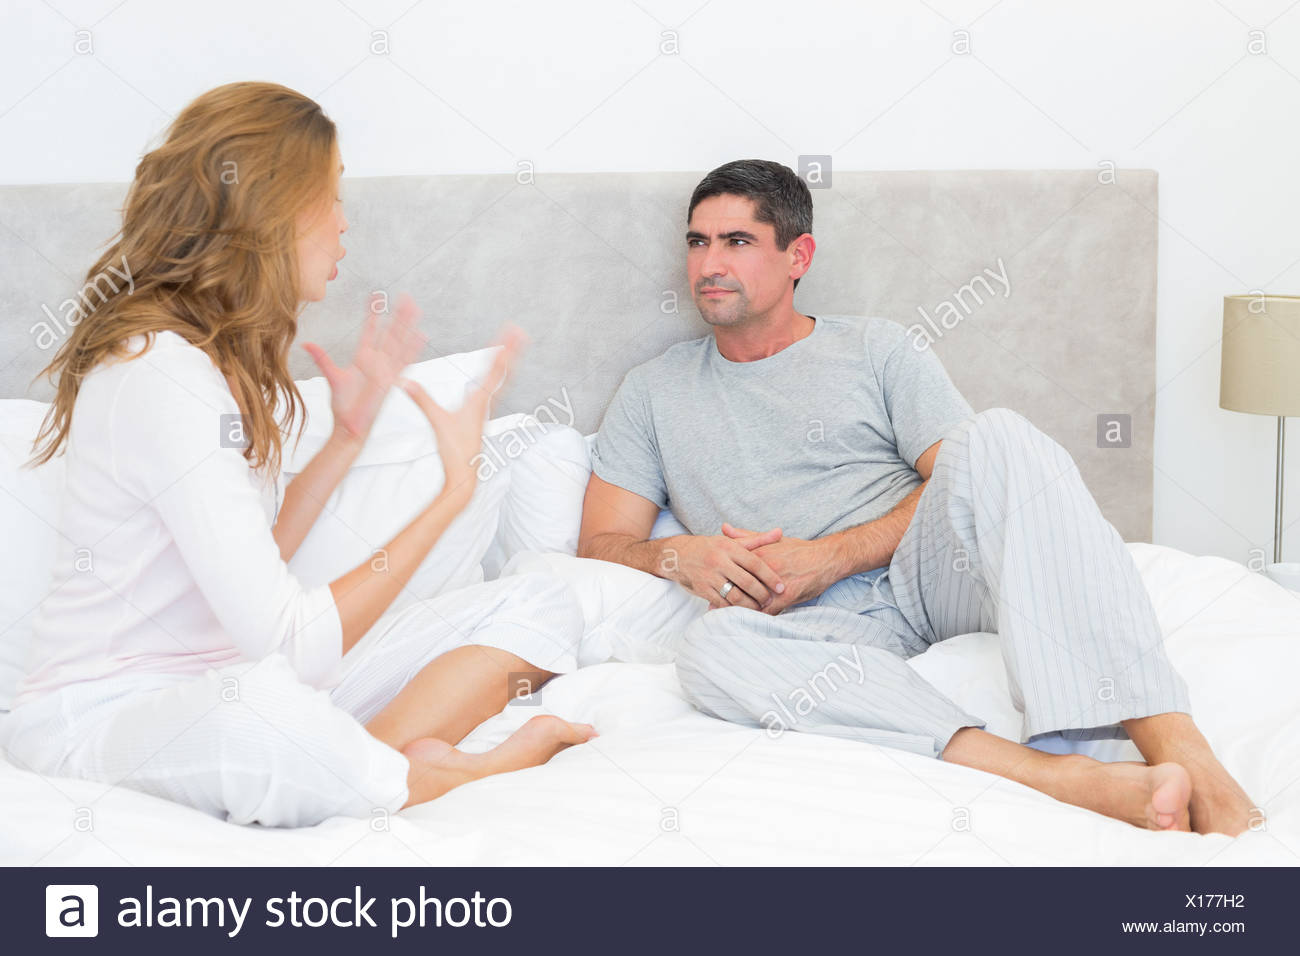 Couple arguing in bed - Stock Image